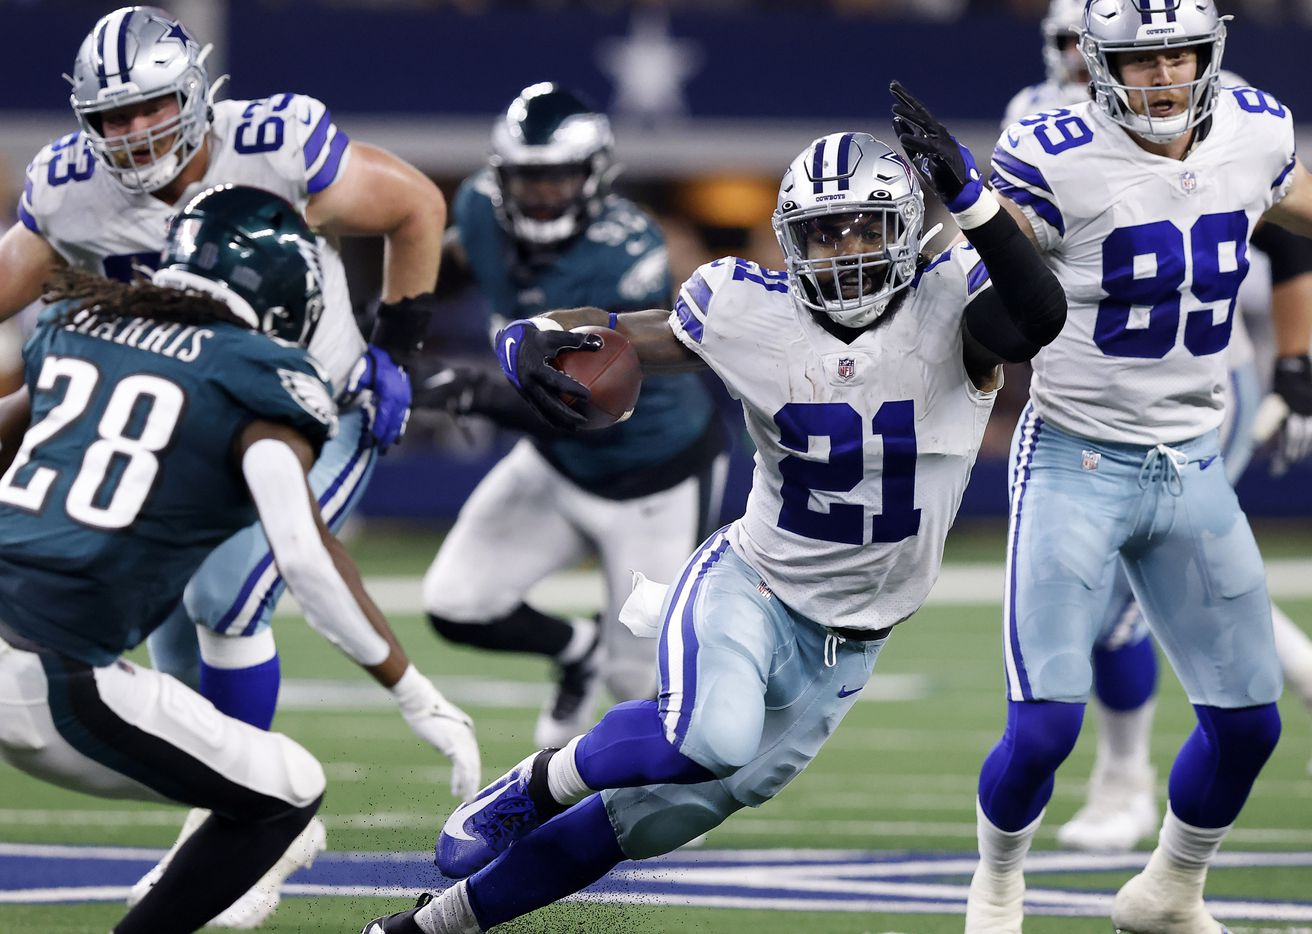 Dallas Cowboys running back Ezekiel Elliott (21) makes a cut to avoid the tackle by Philadelphia Eagles defensive back Anthony Harris (28) during the second quarter at AT&T Stadium in Arlington, Monday, September 27, 2021. (Tom Fox/The Dallas Morning News)